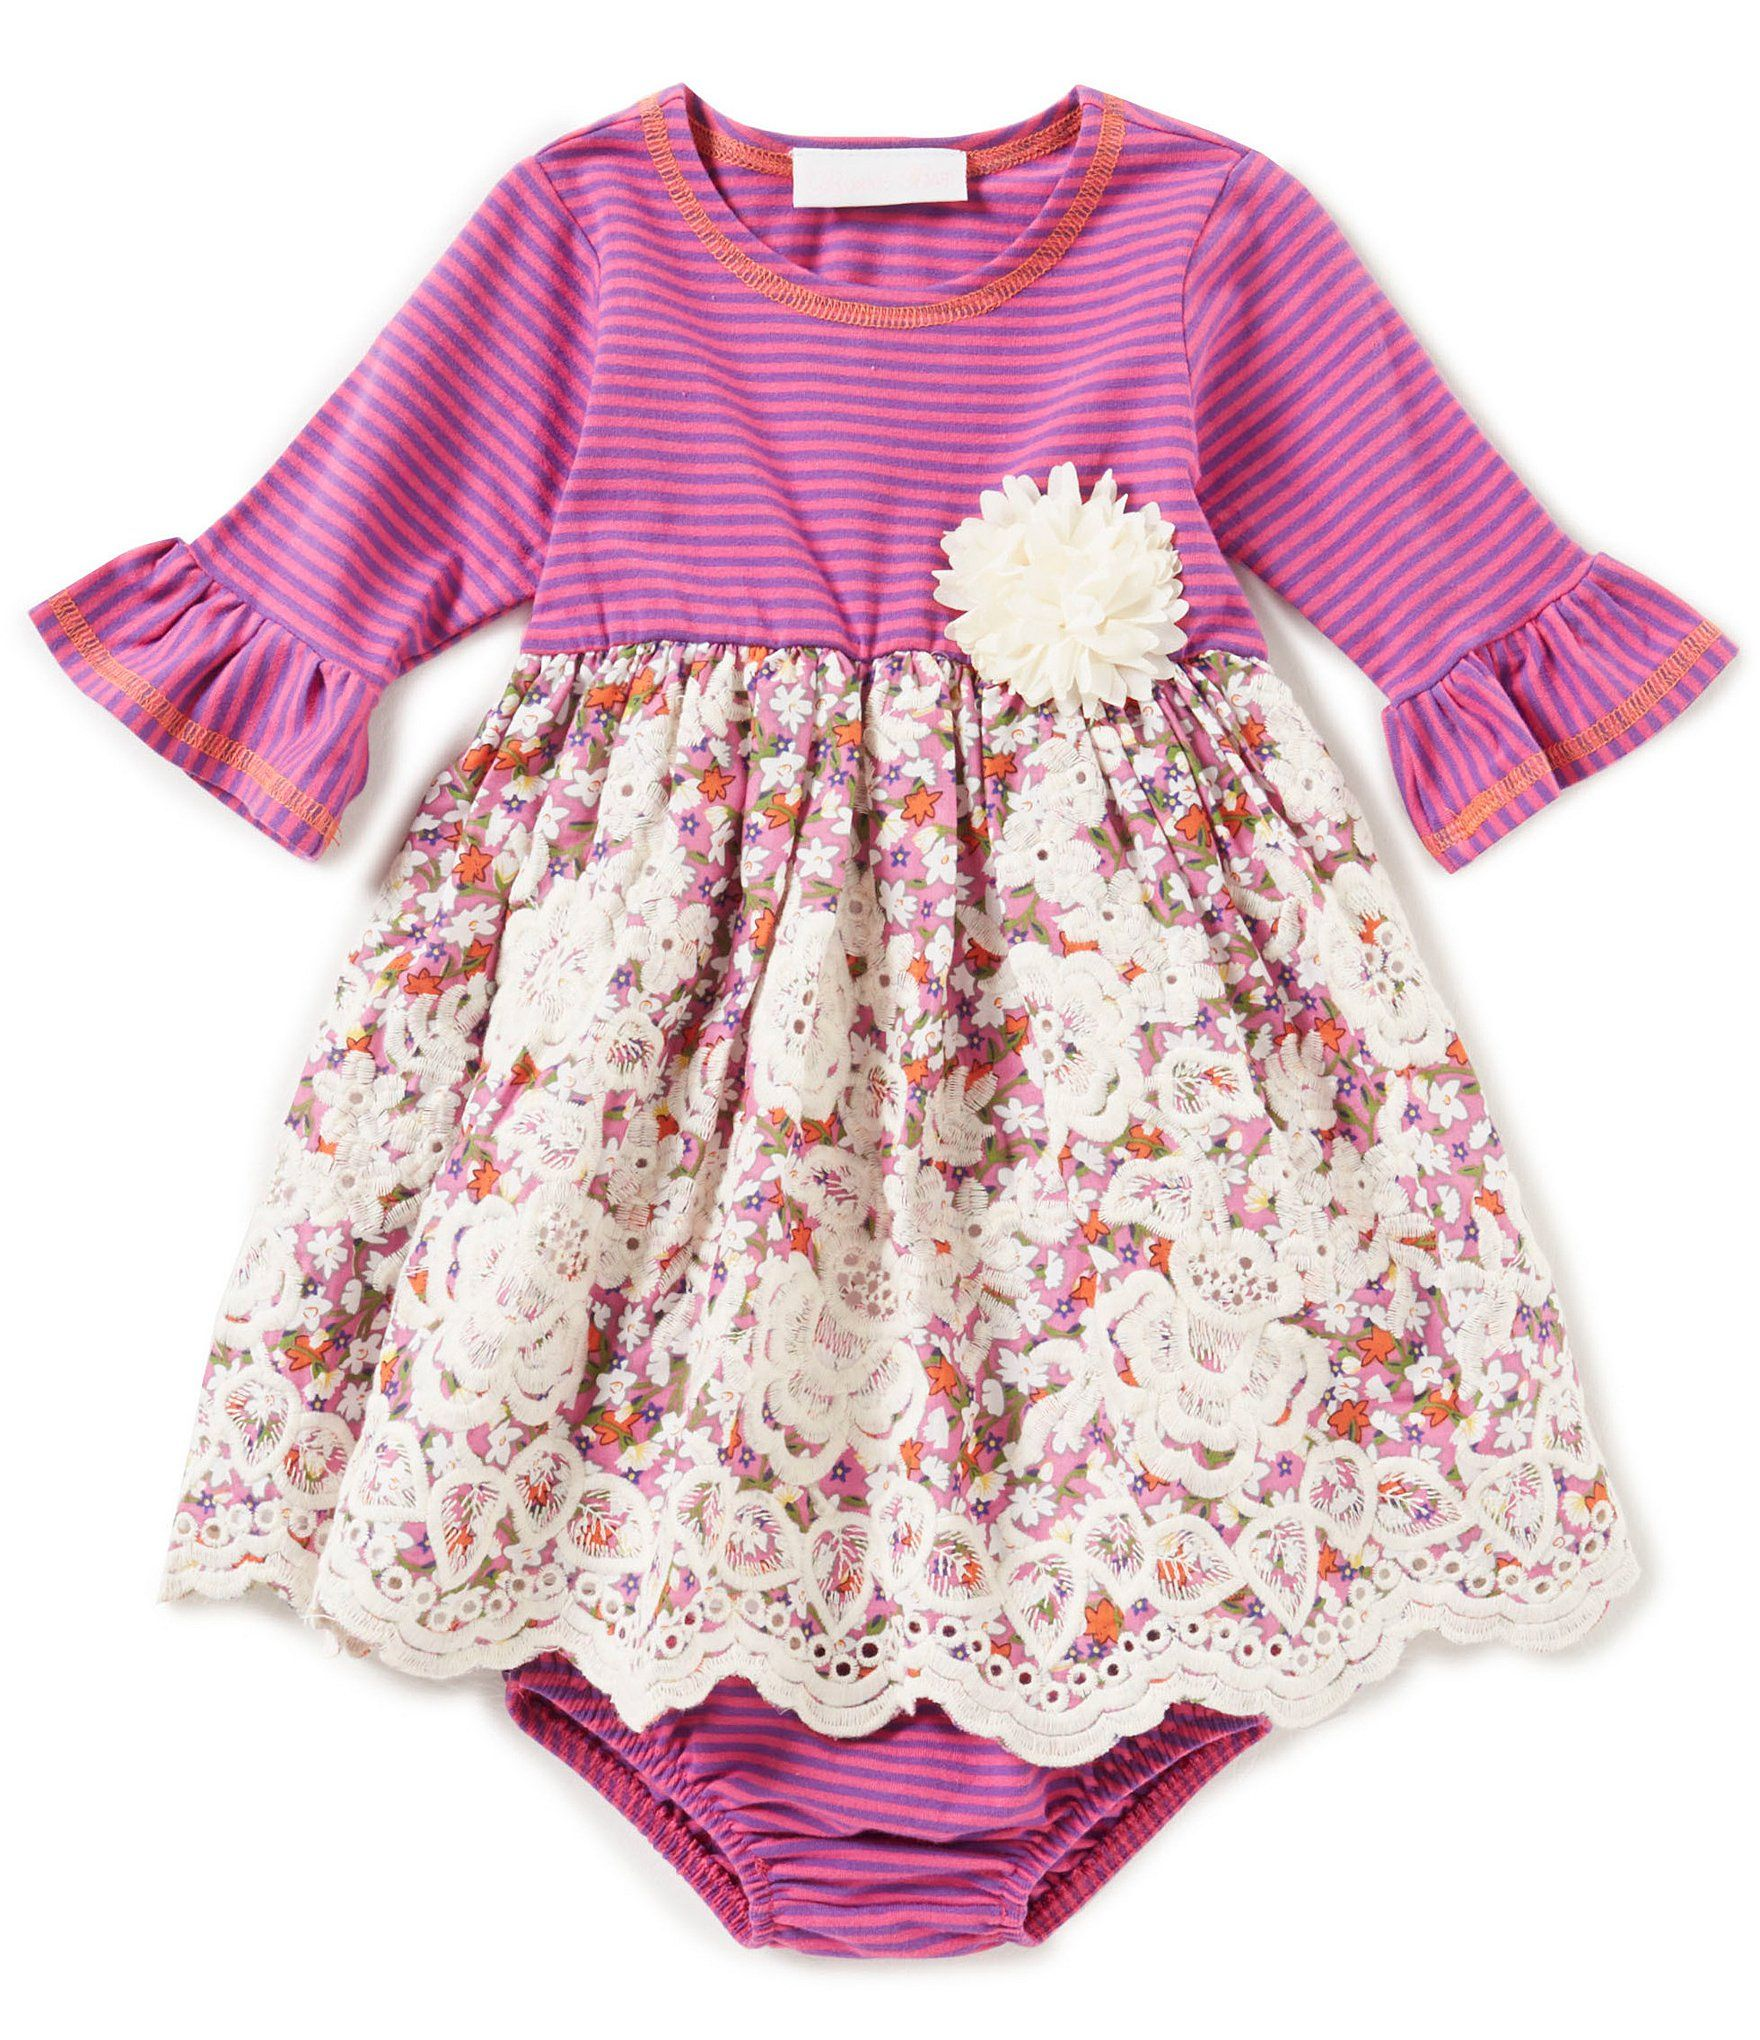 Shop for Bonnie Baby Baby Girls 12 24 Months Stripe Lace A Line